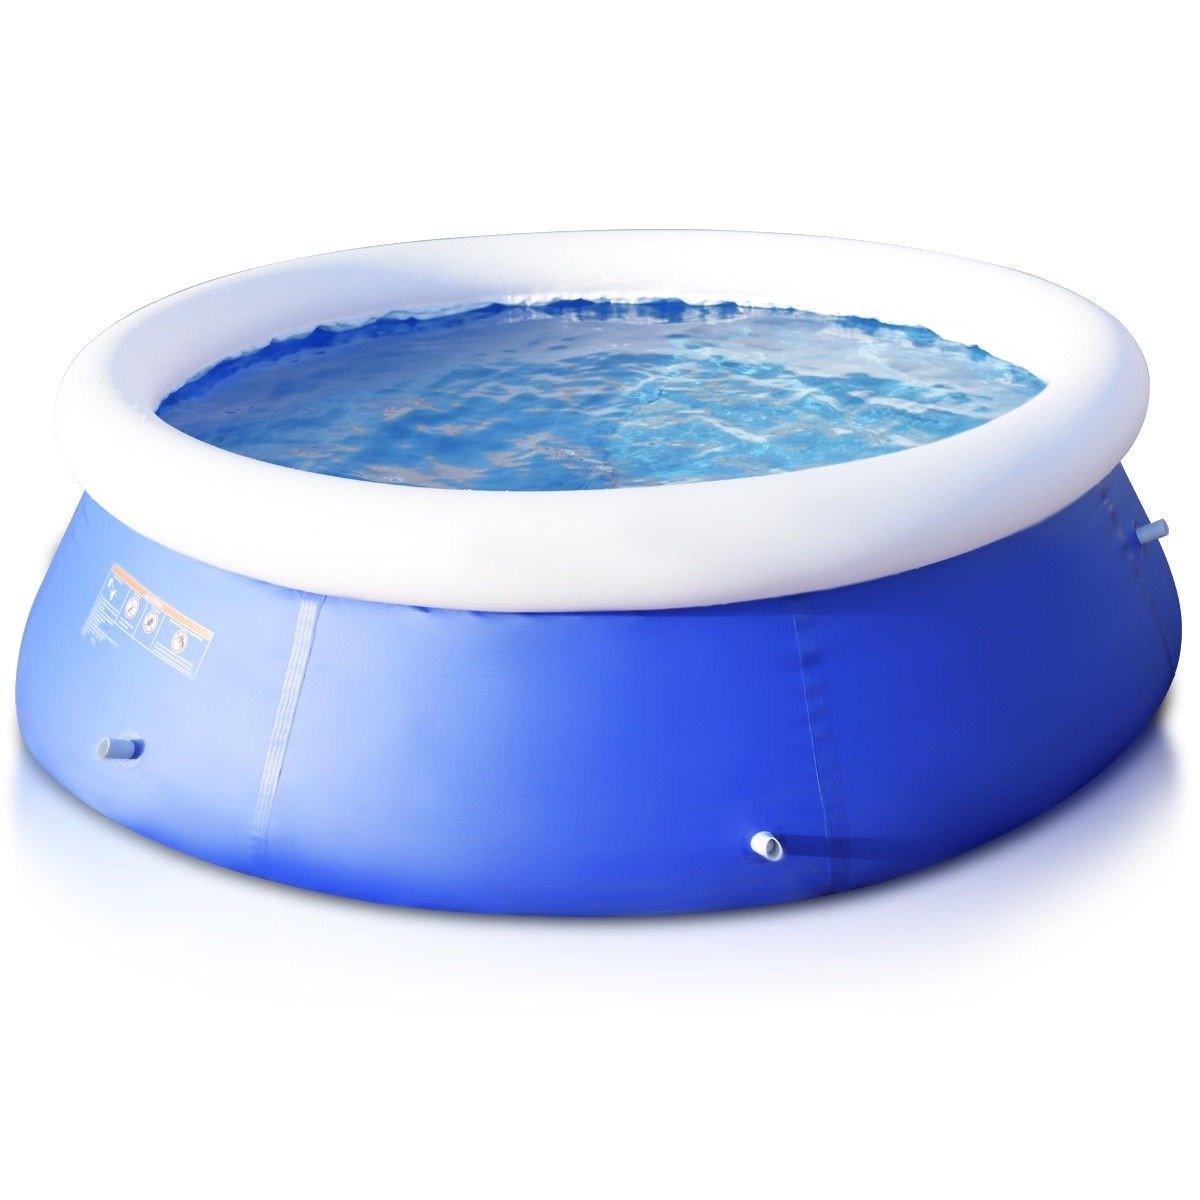 King77777 8 ft x 30 inch Easy-Set Giant Inflatable Ground Swimming Pool Family Relax and Play All Summer by King77777